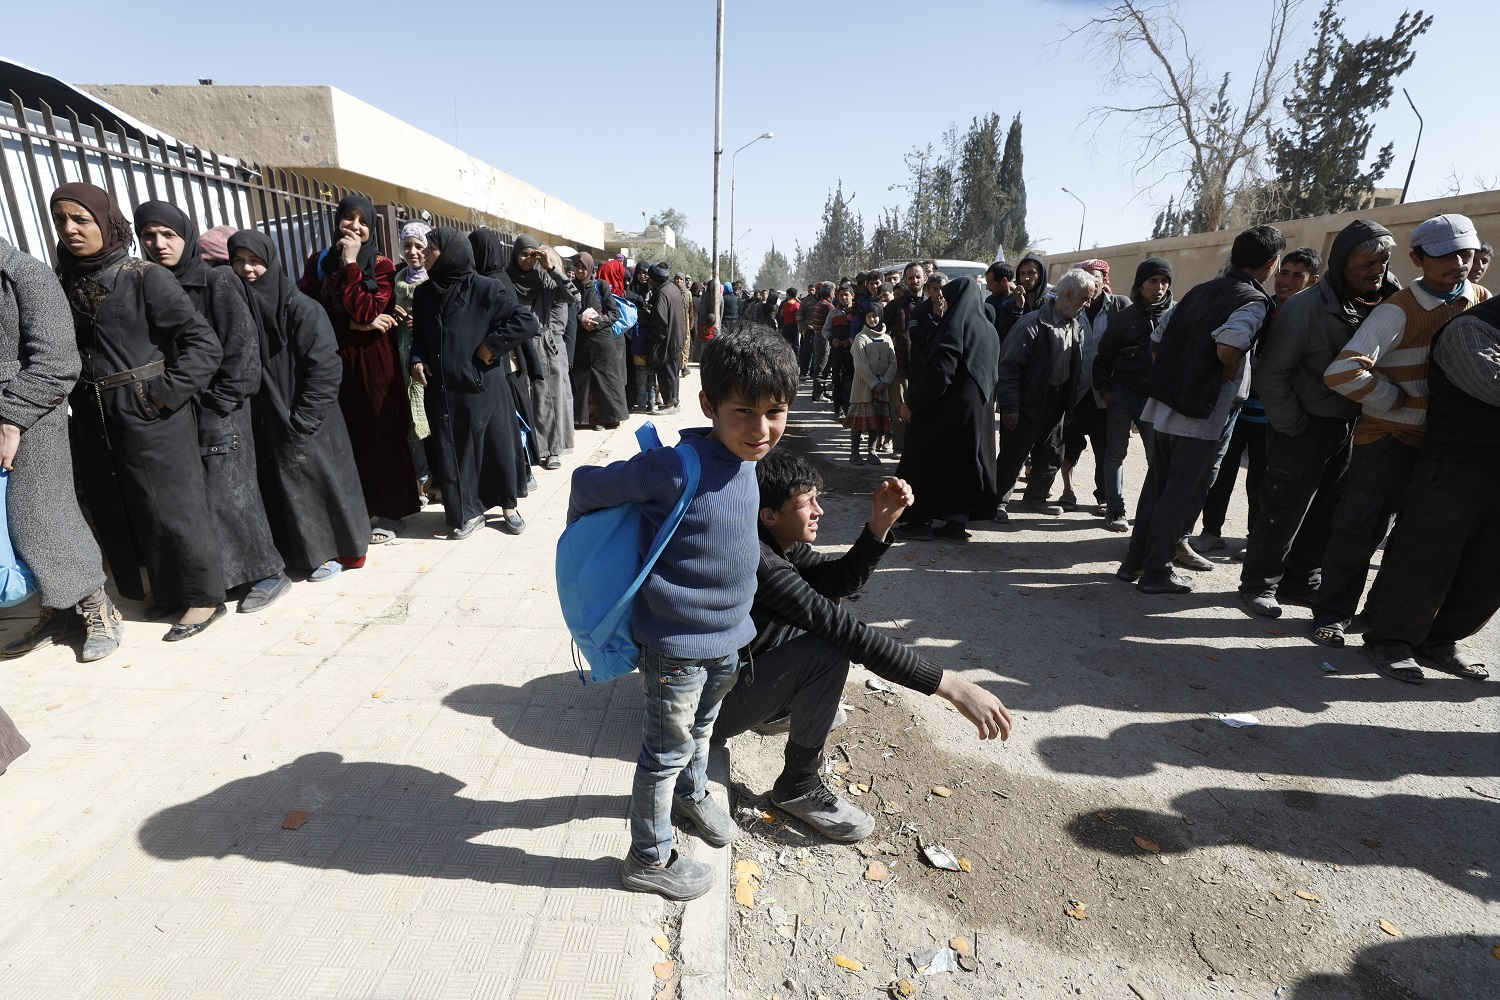 Two children - one sitting and one standing - on a pavement flanked by two rows of people - men and women in each row - in Eastern Ghouta, Syria.